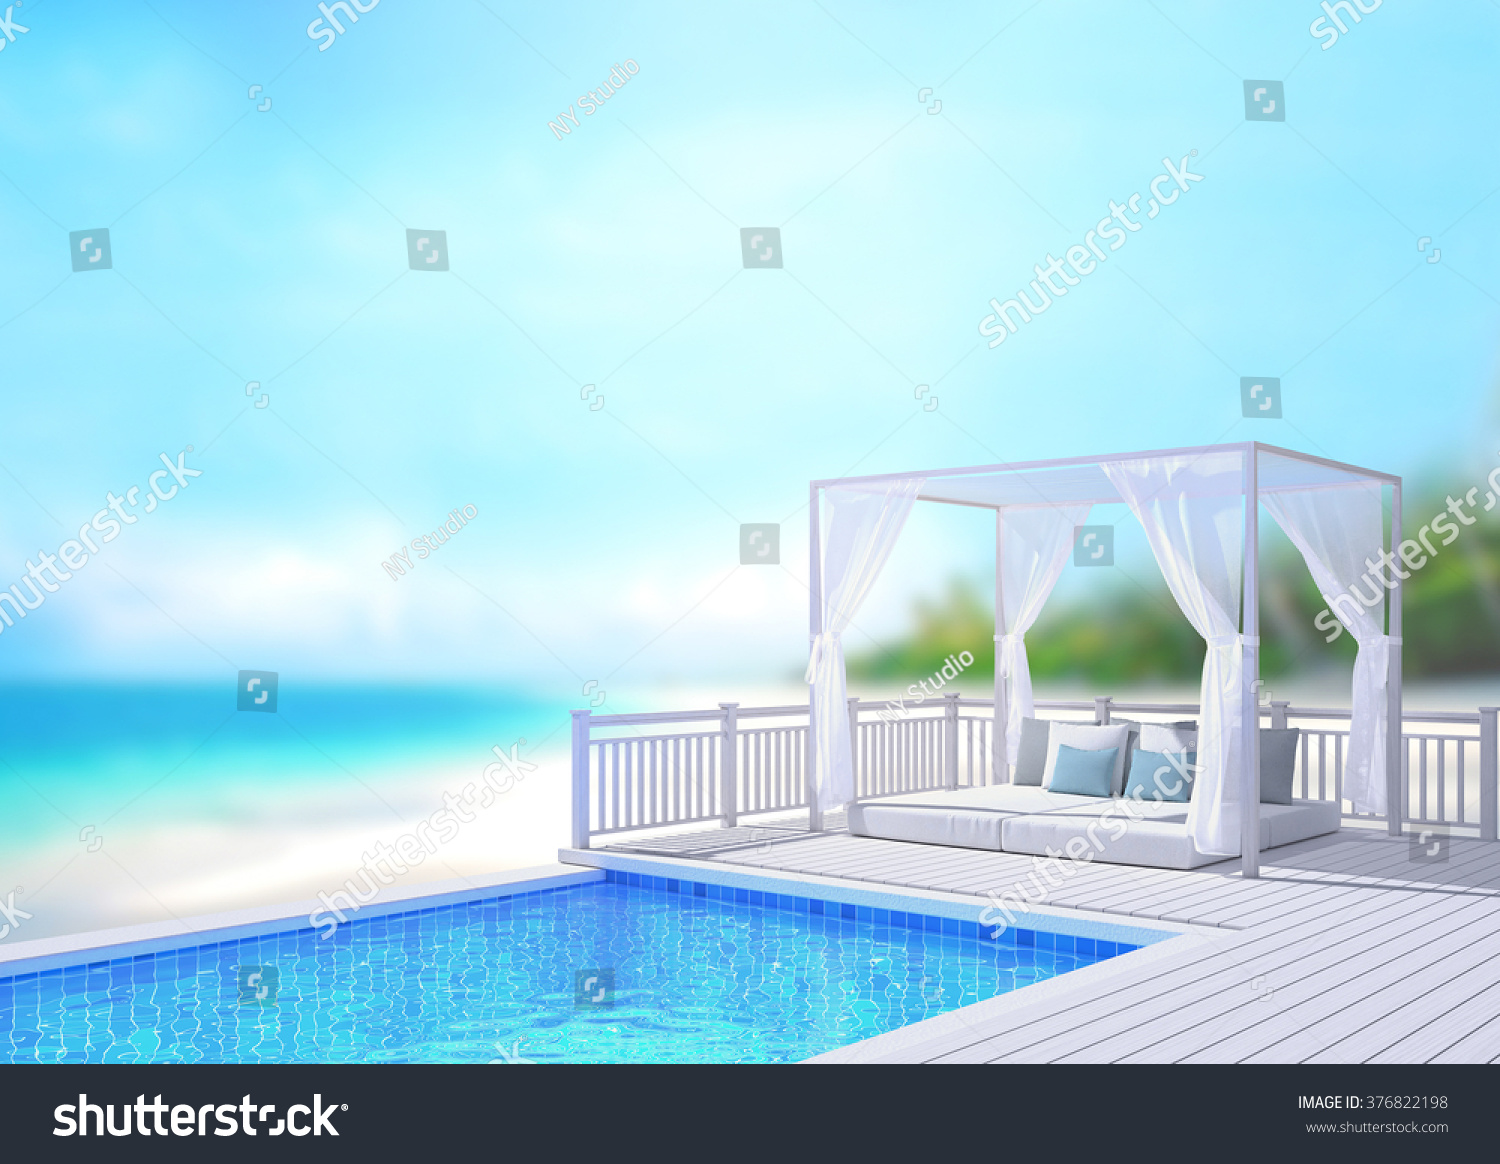 Swimming pool terrace blur nature background stock for Terrace nature